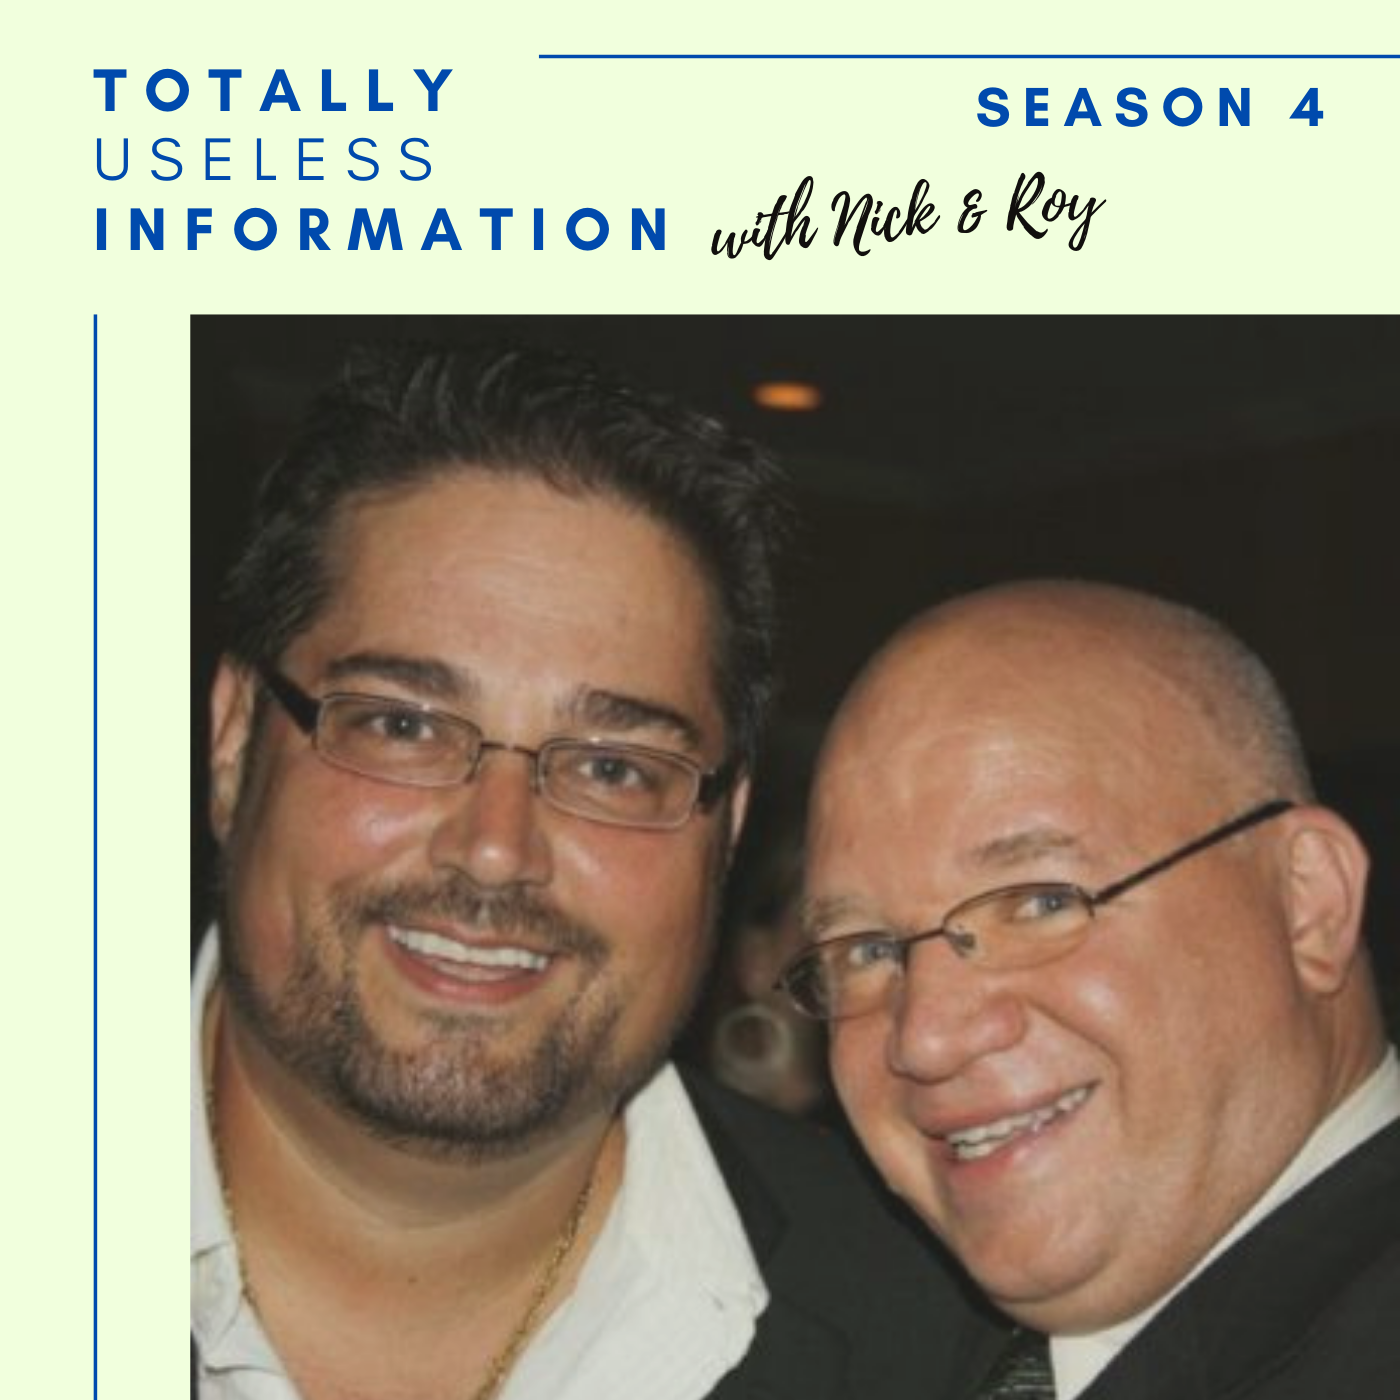 Totally Useless Information with Nick and Roy